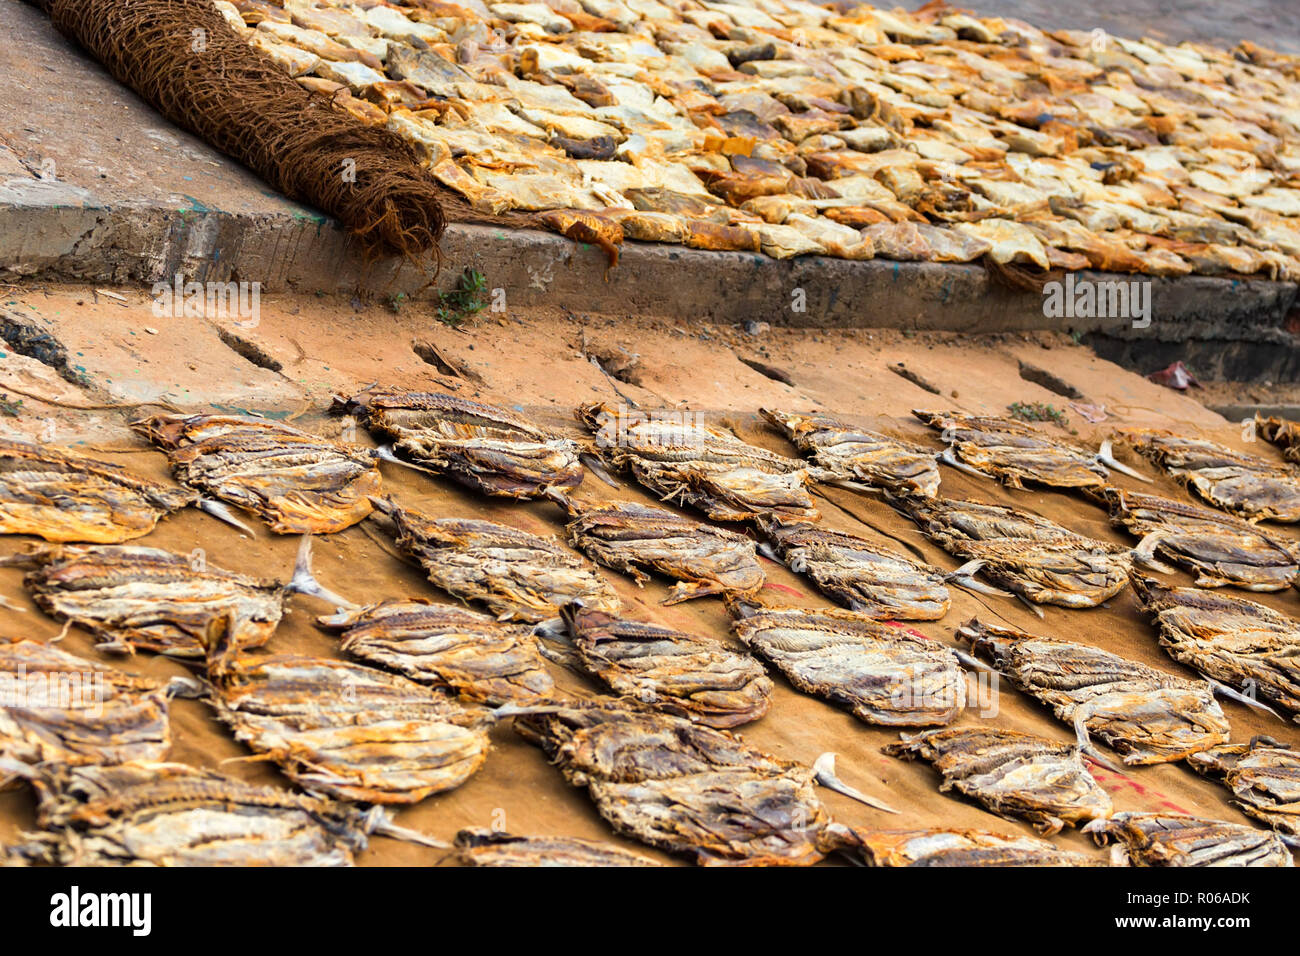 Fish caught and laid on ground at fishing pier - Stock Image